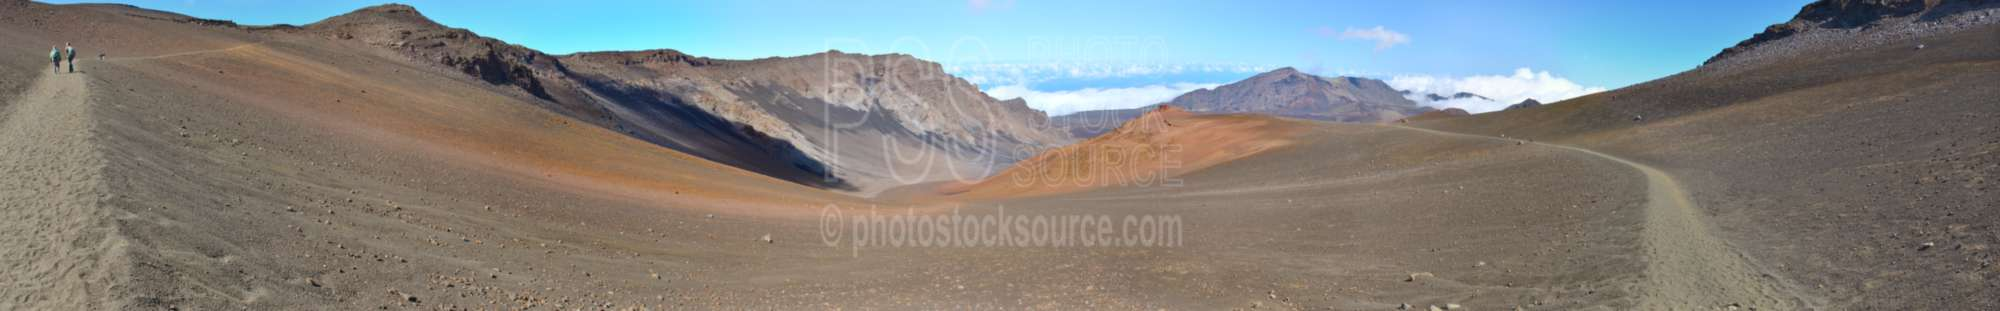 Haleakala Crater Trails